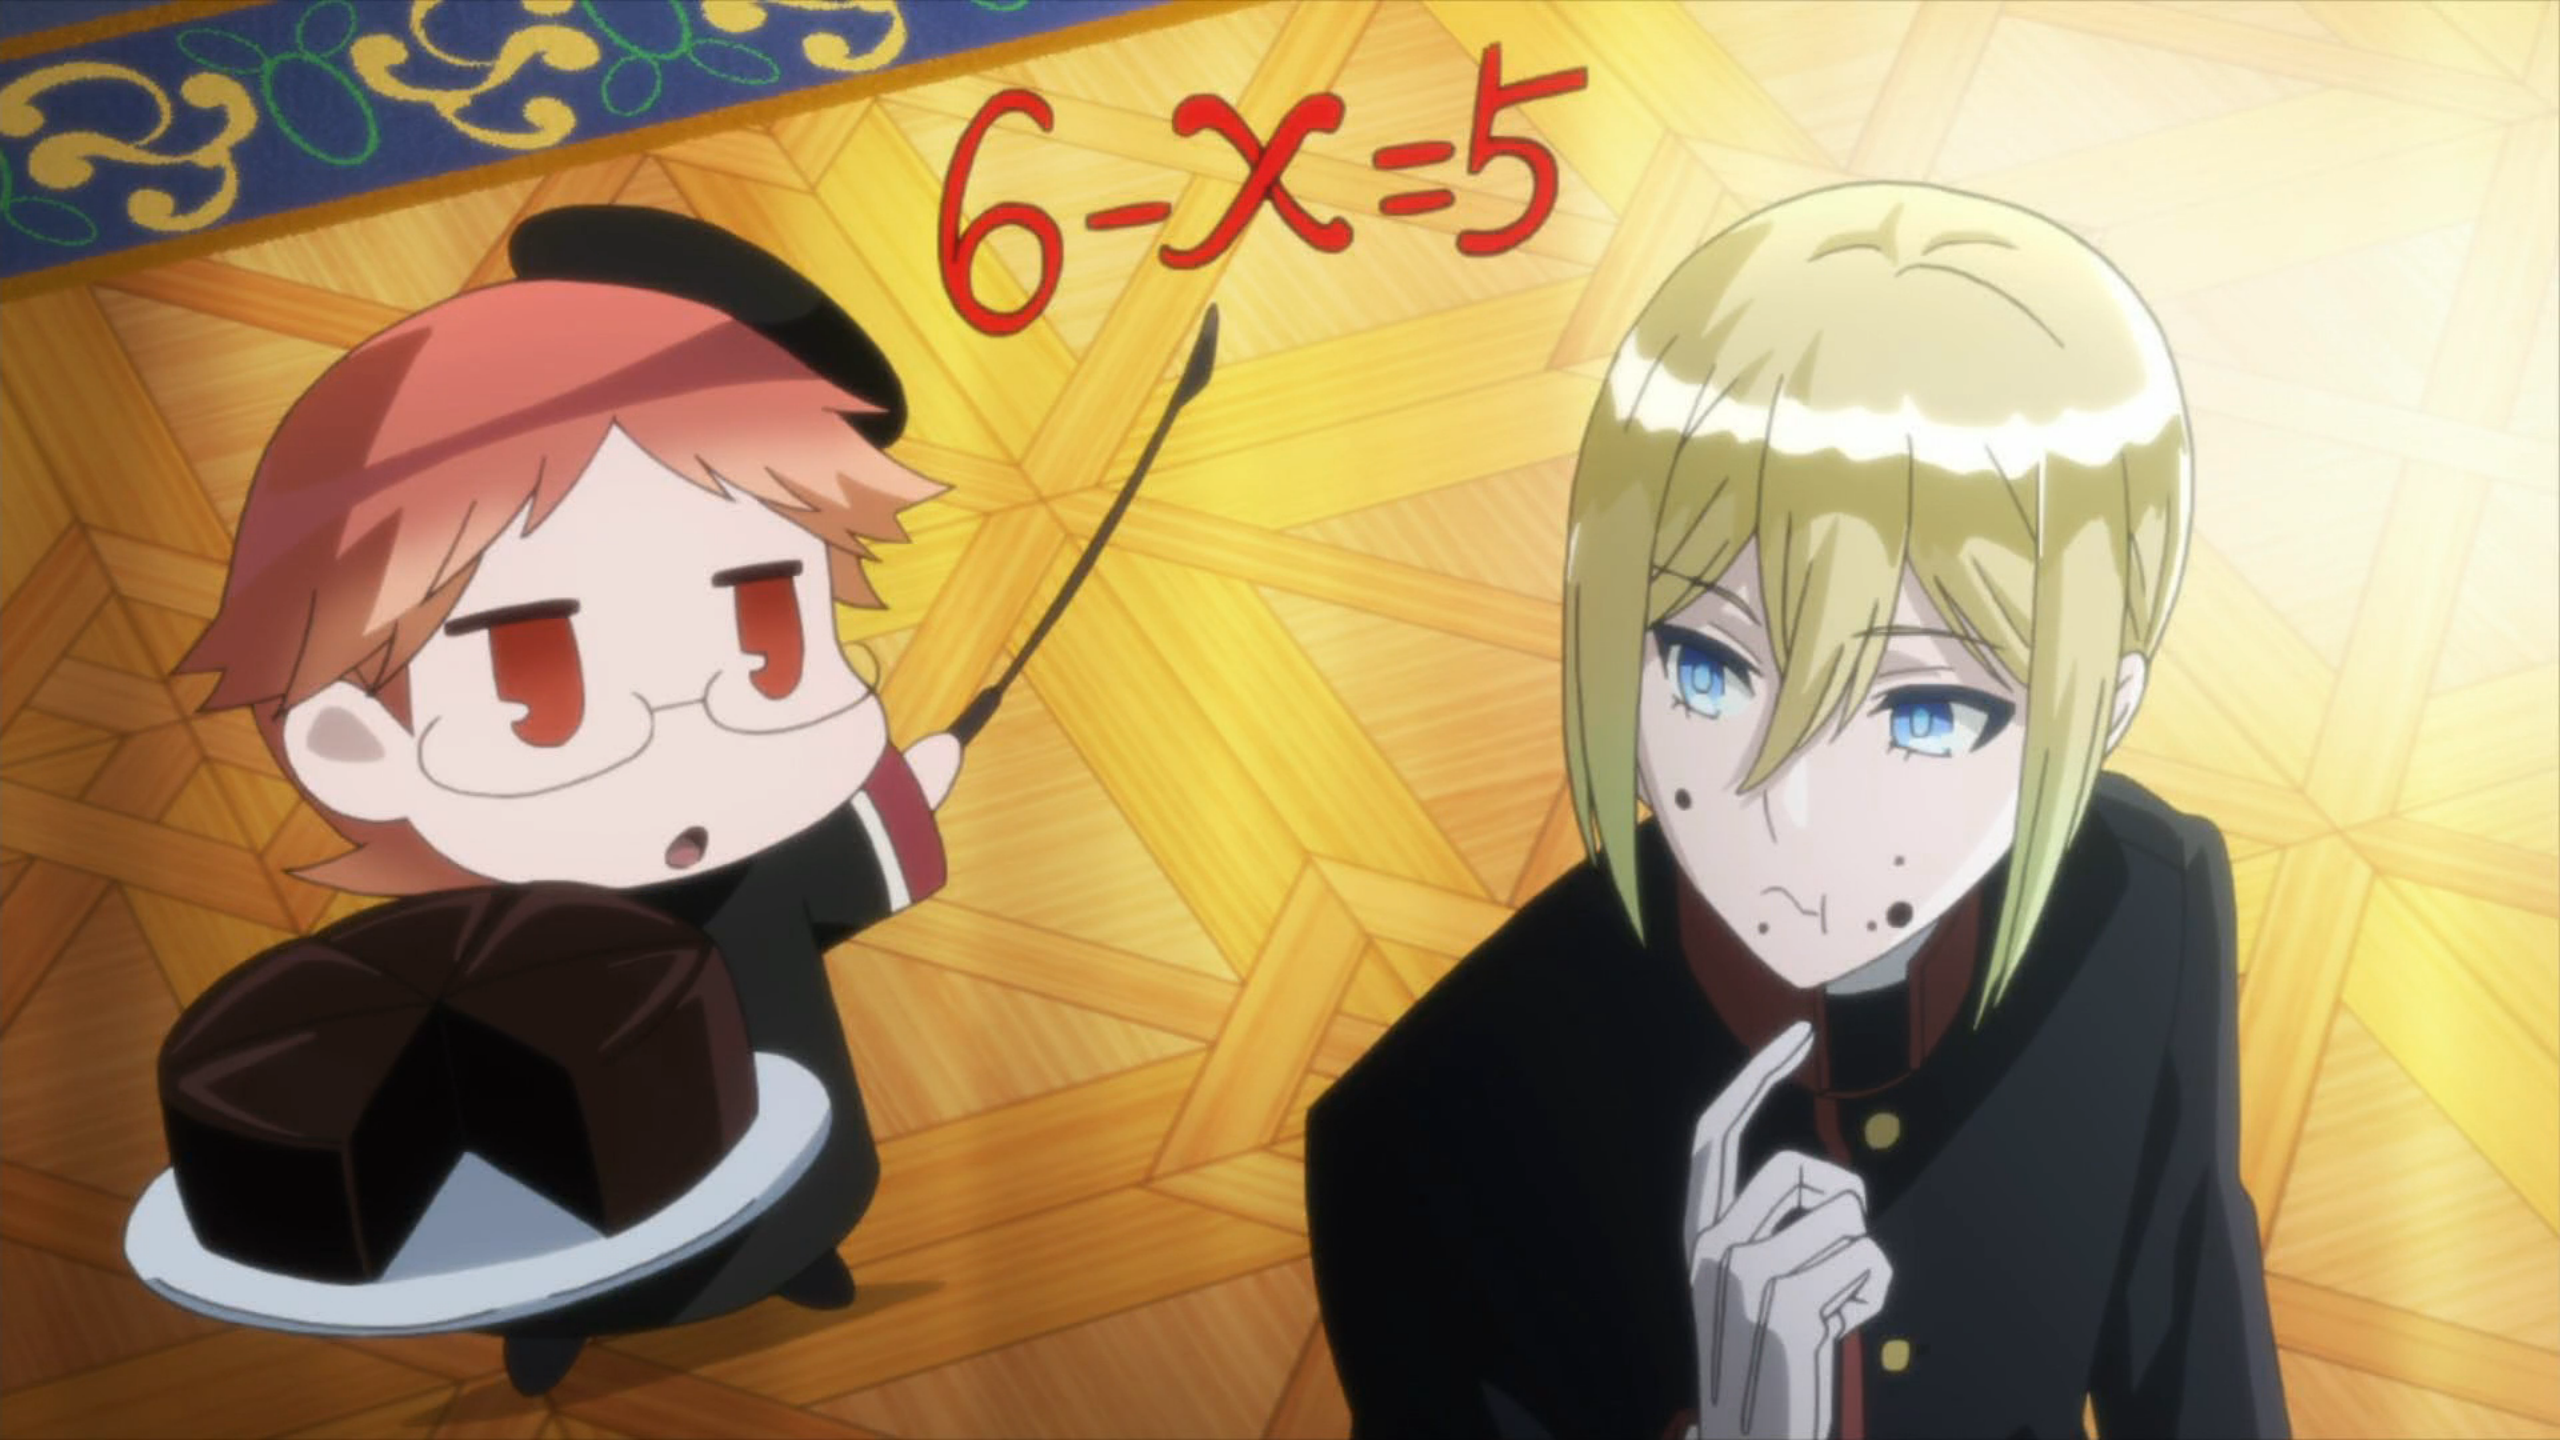 A screenshot from the Royal Tutor. Heine holds a chocolate torte and points to an algebra problem written in the air beside him. Licht looks at him uncertainly.